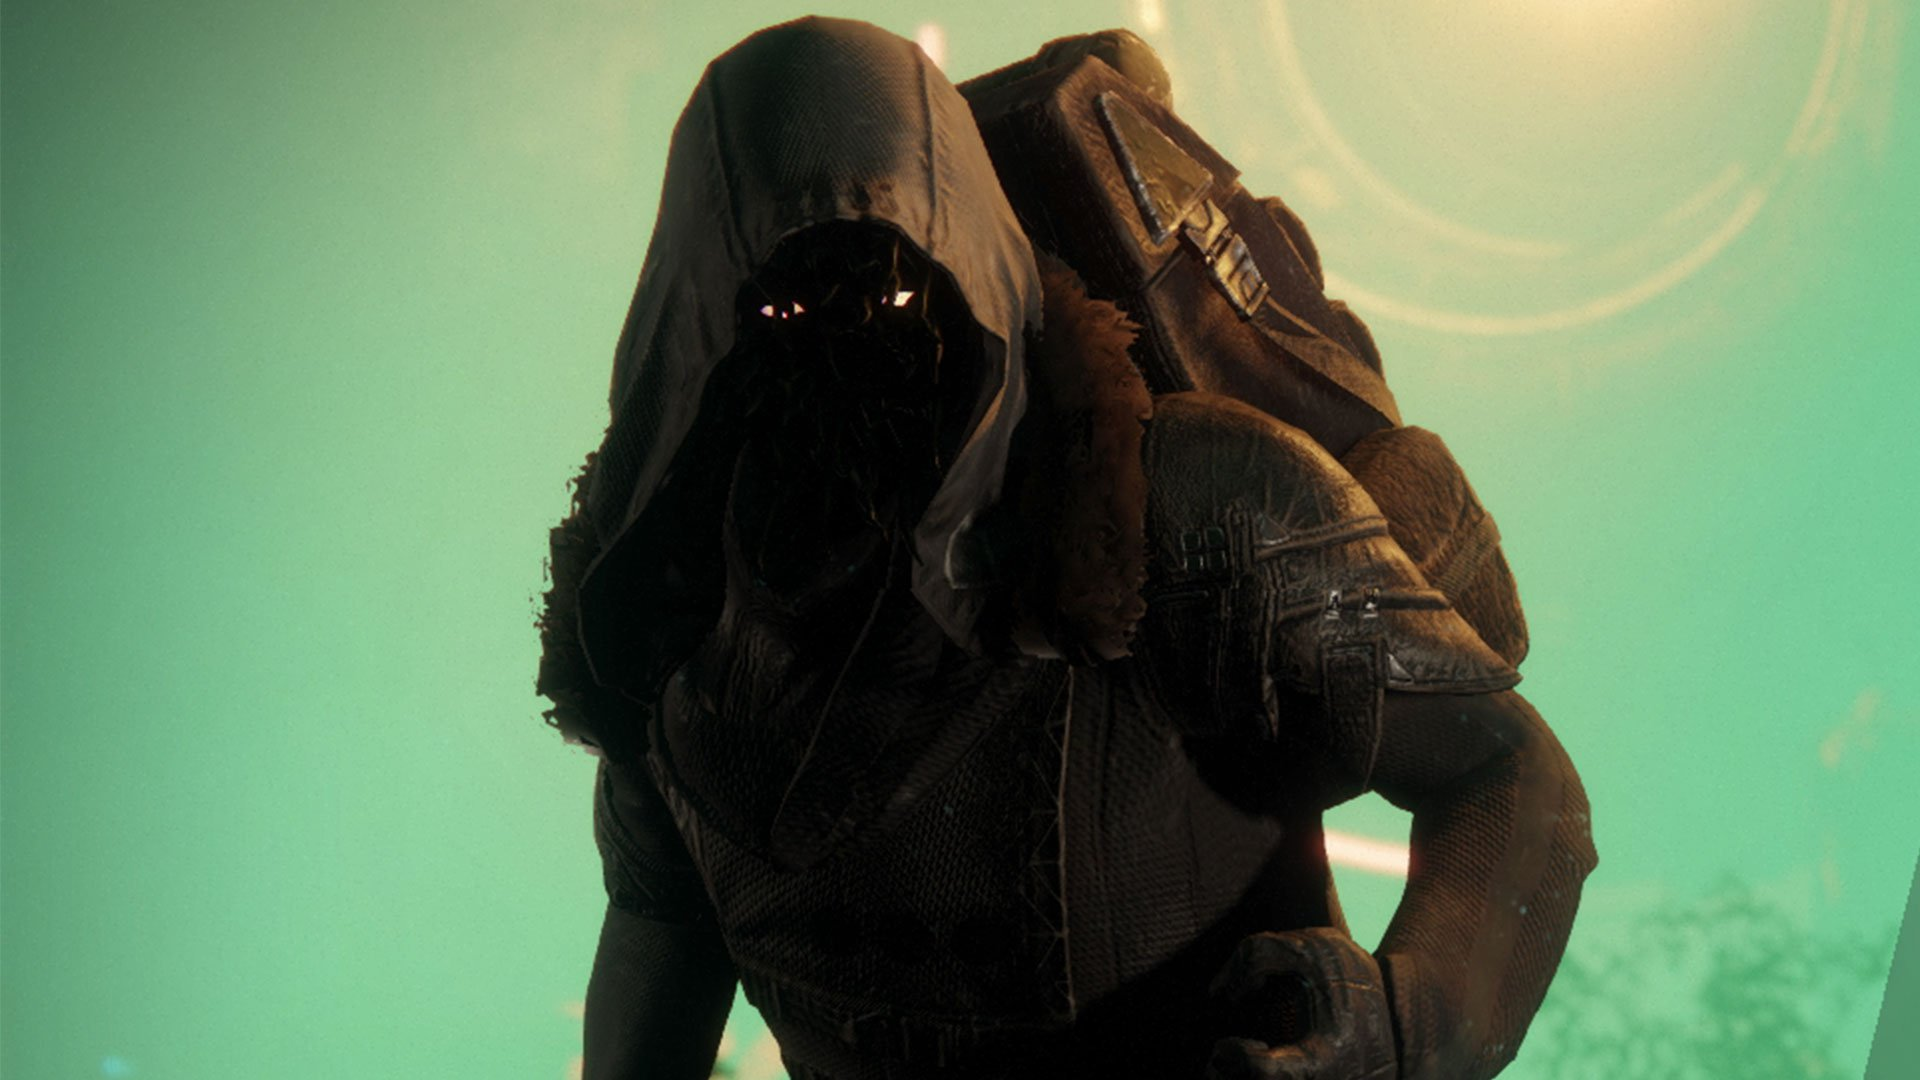 Where to find Xur in Destiny 2